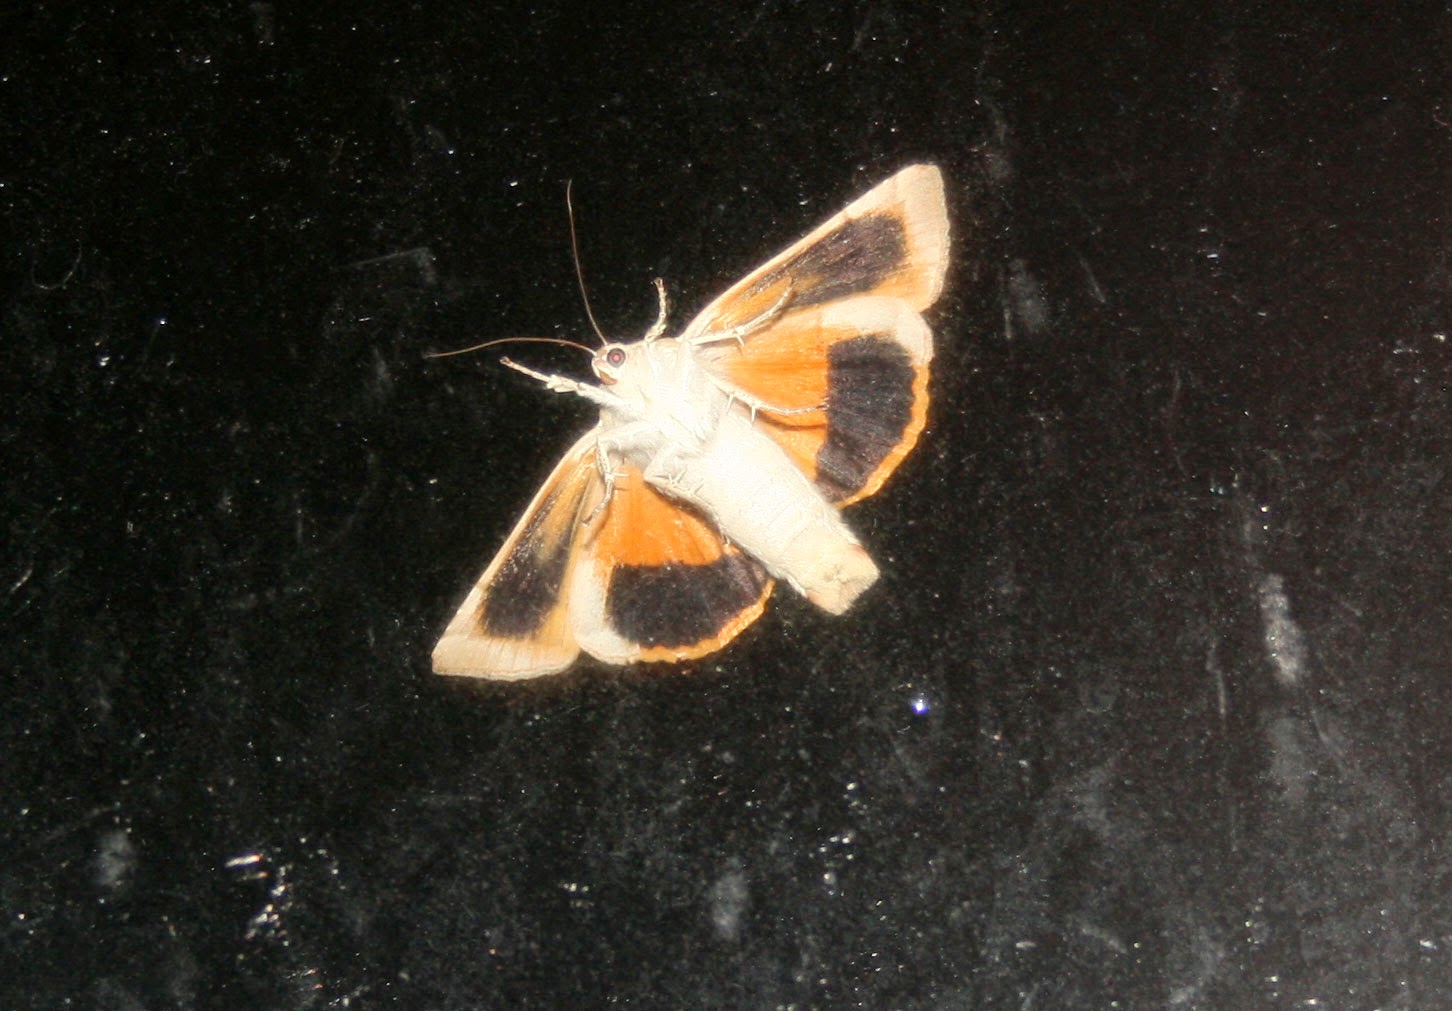 The moth from last night